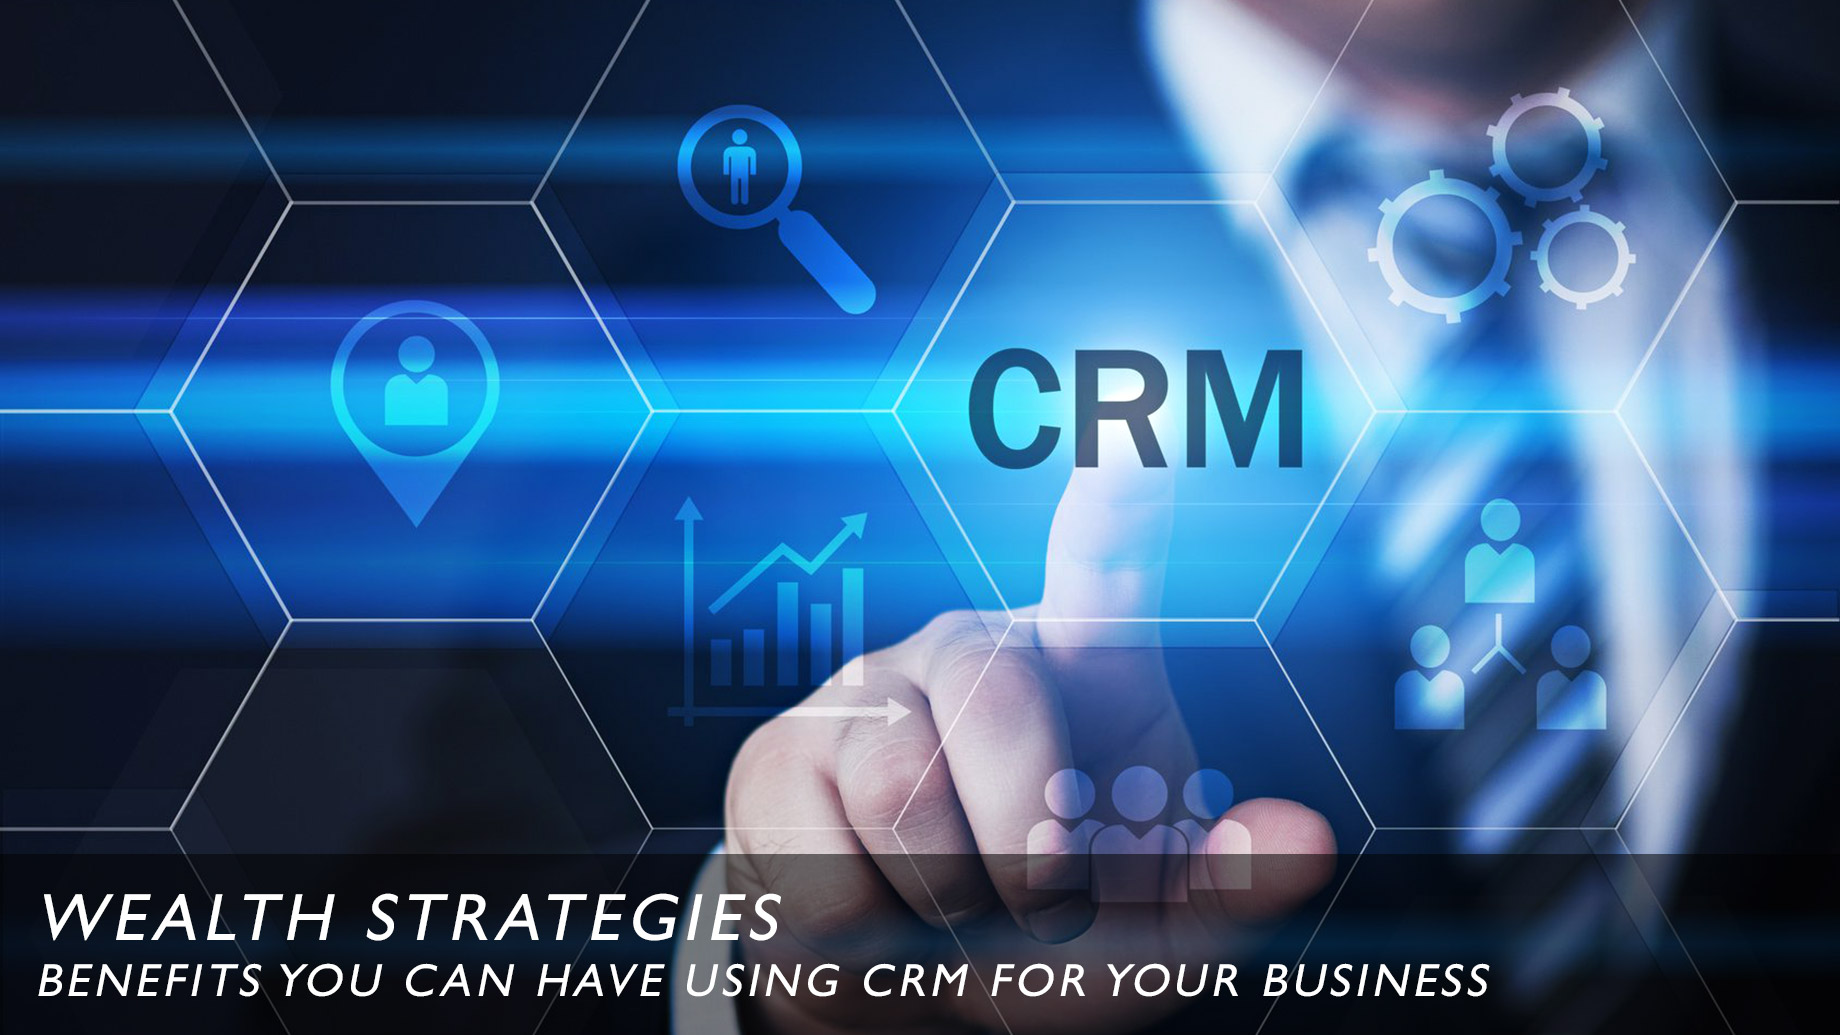 Wealth Strategies - Benefits You Can Have Using CRM for Your Business